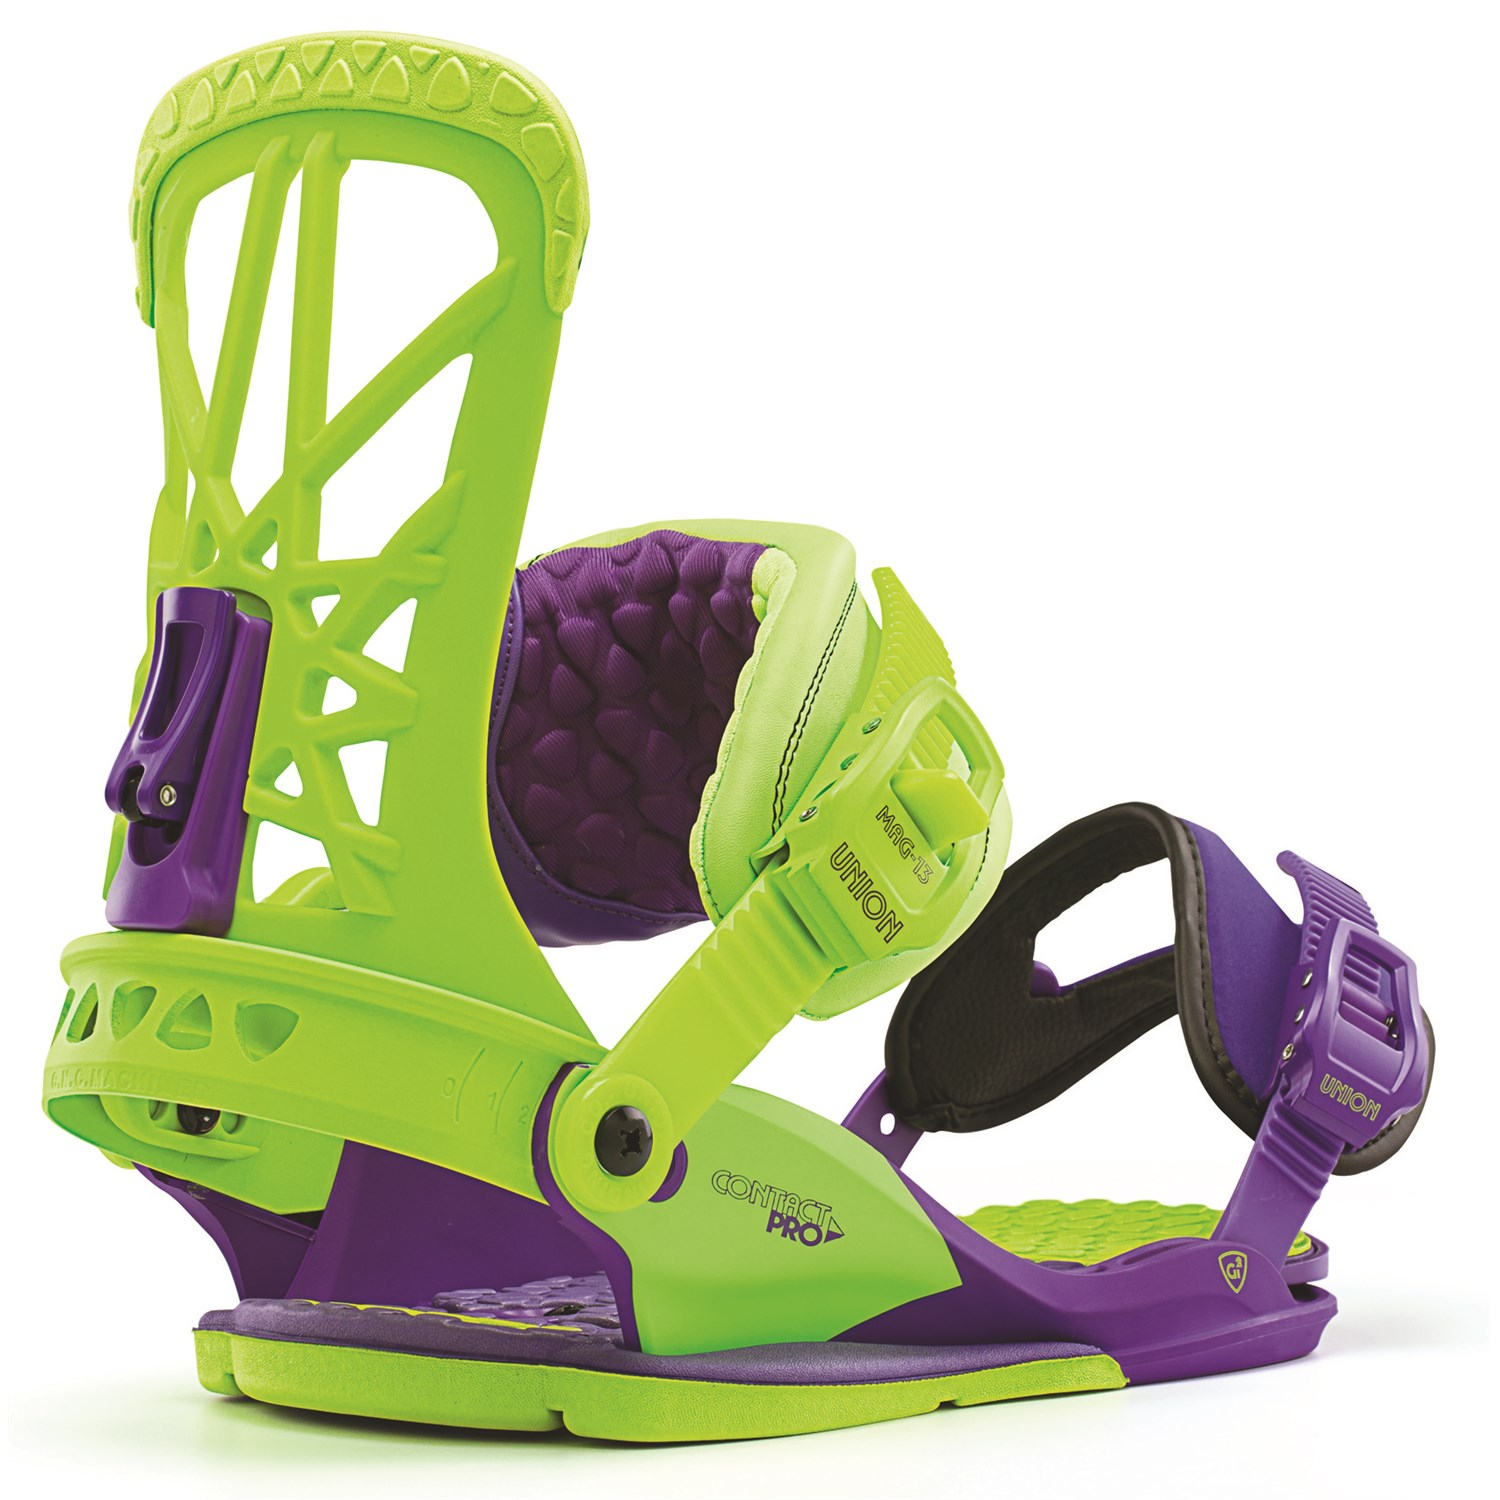 K2 Fastplant Snowboard + Union Contact Pro Bindings 2013